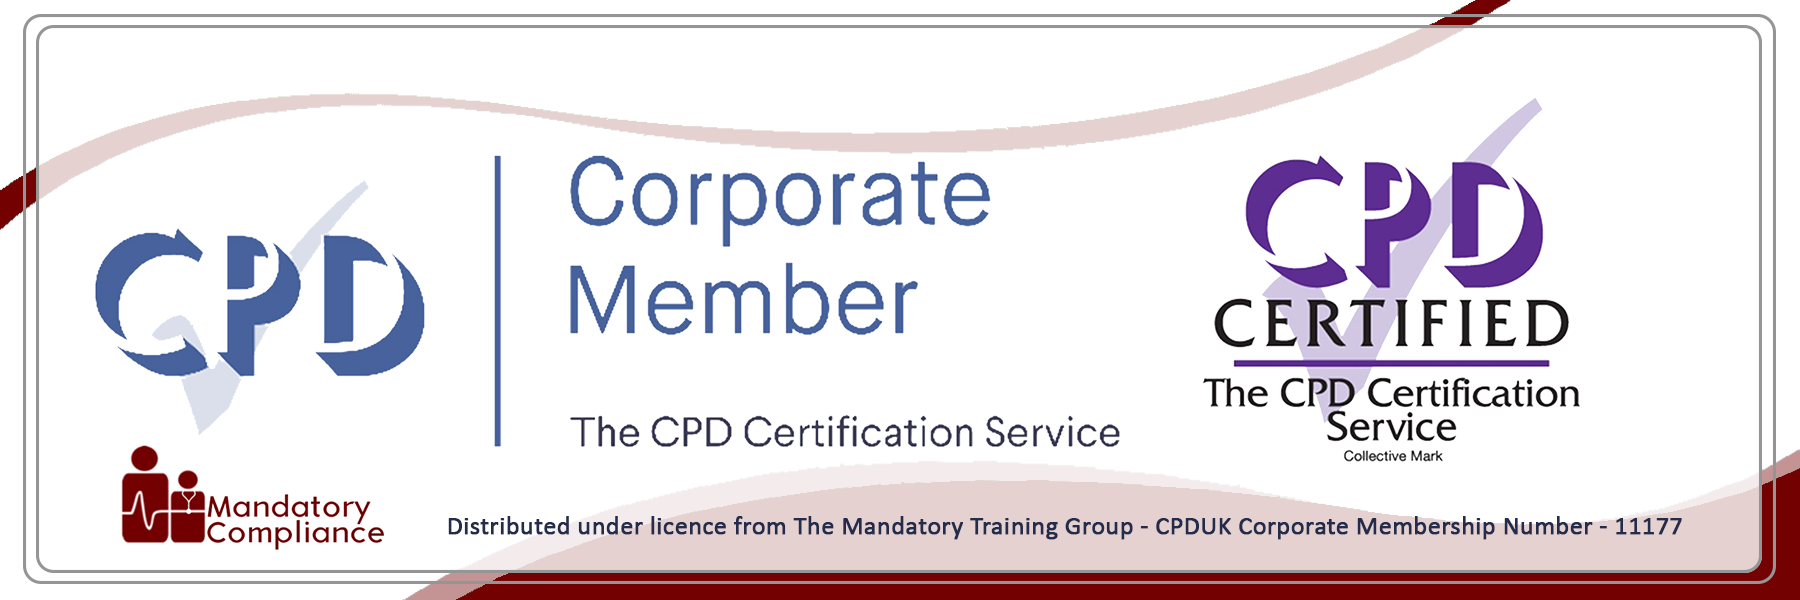 Negotiation Skills Training - Online Training Course - CPD Accredited - Mandatory Compliance UK -